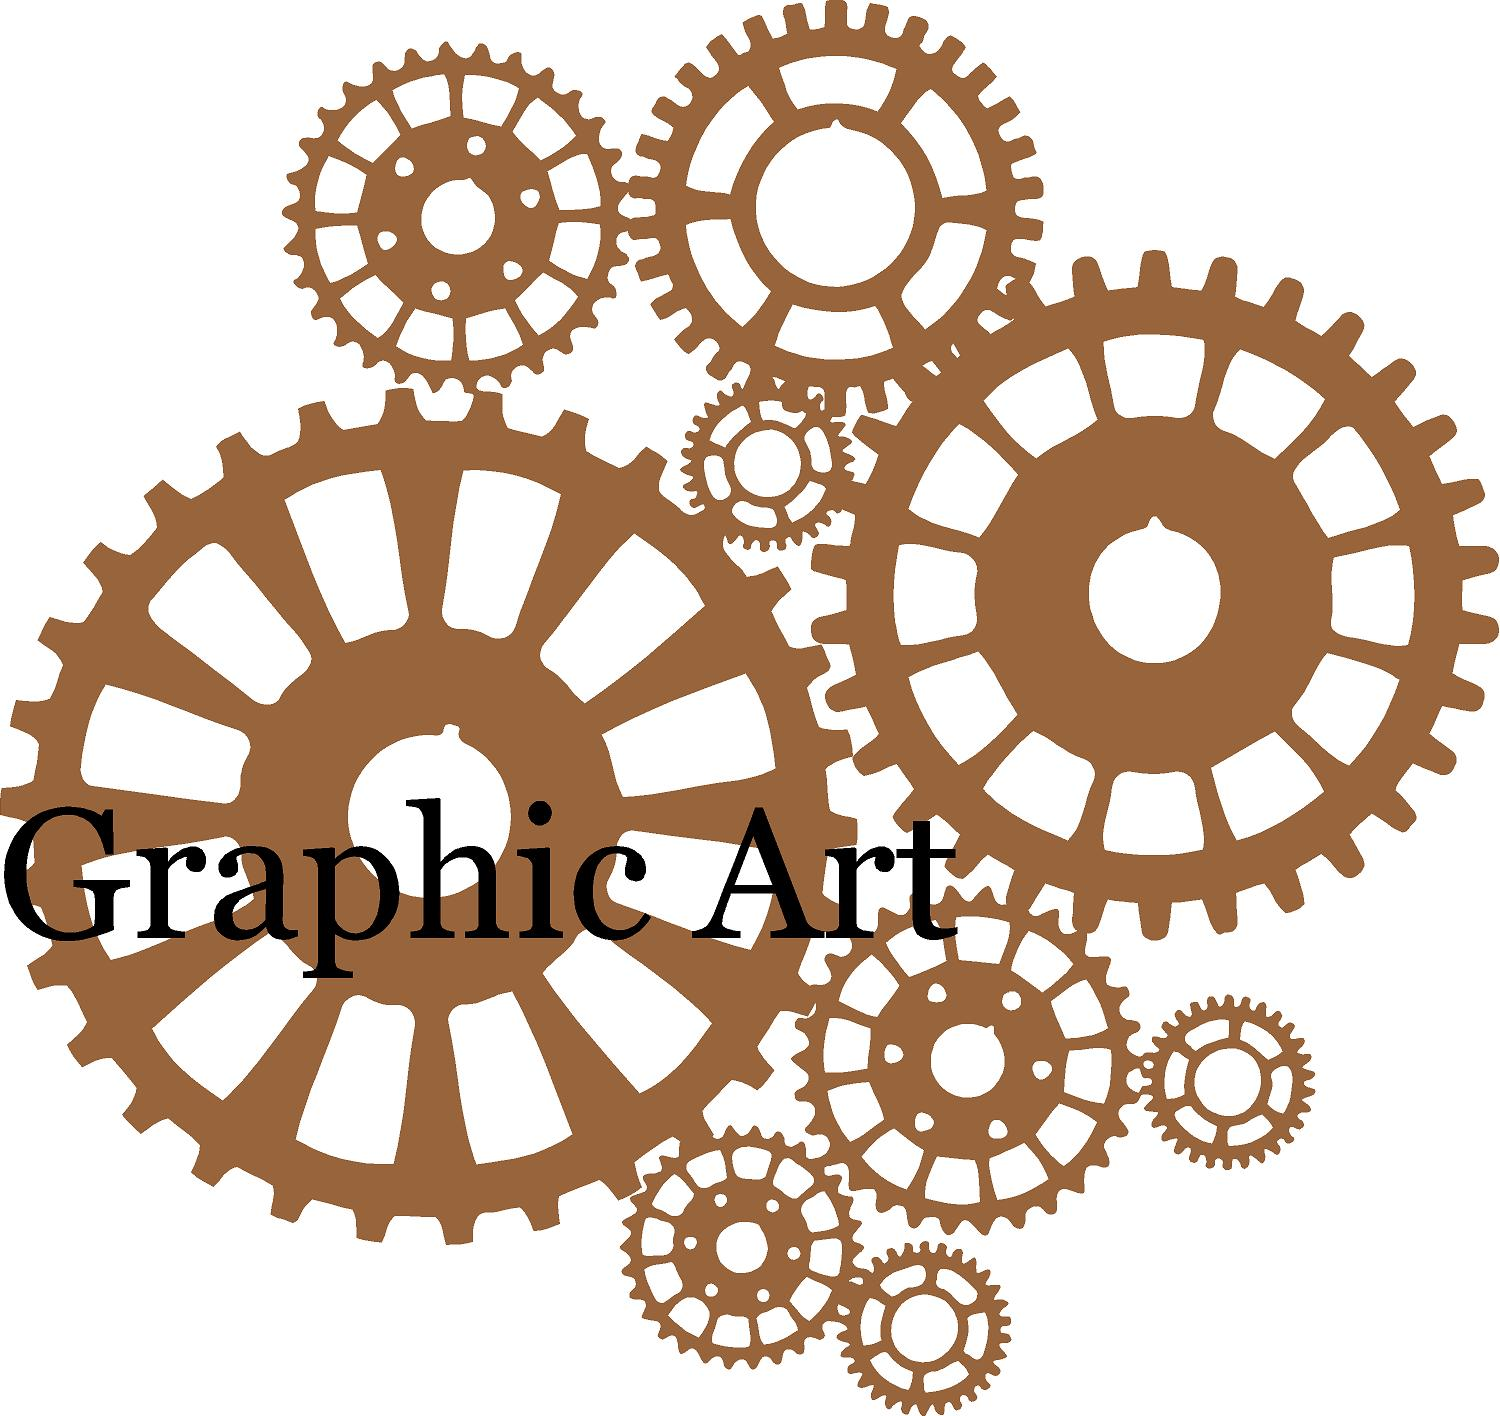 Graphic Design Clearance